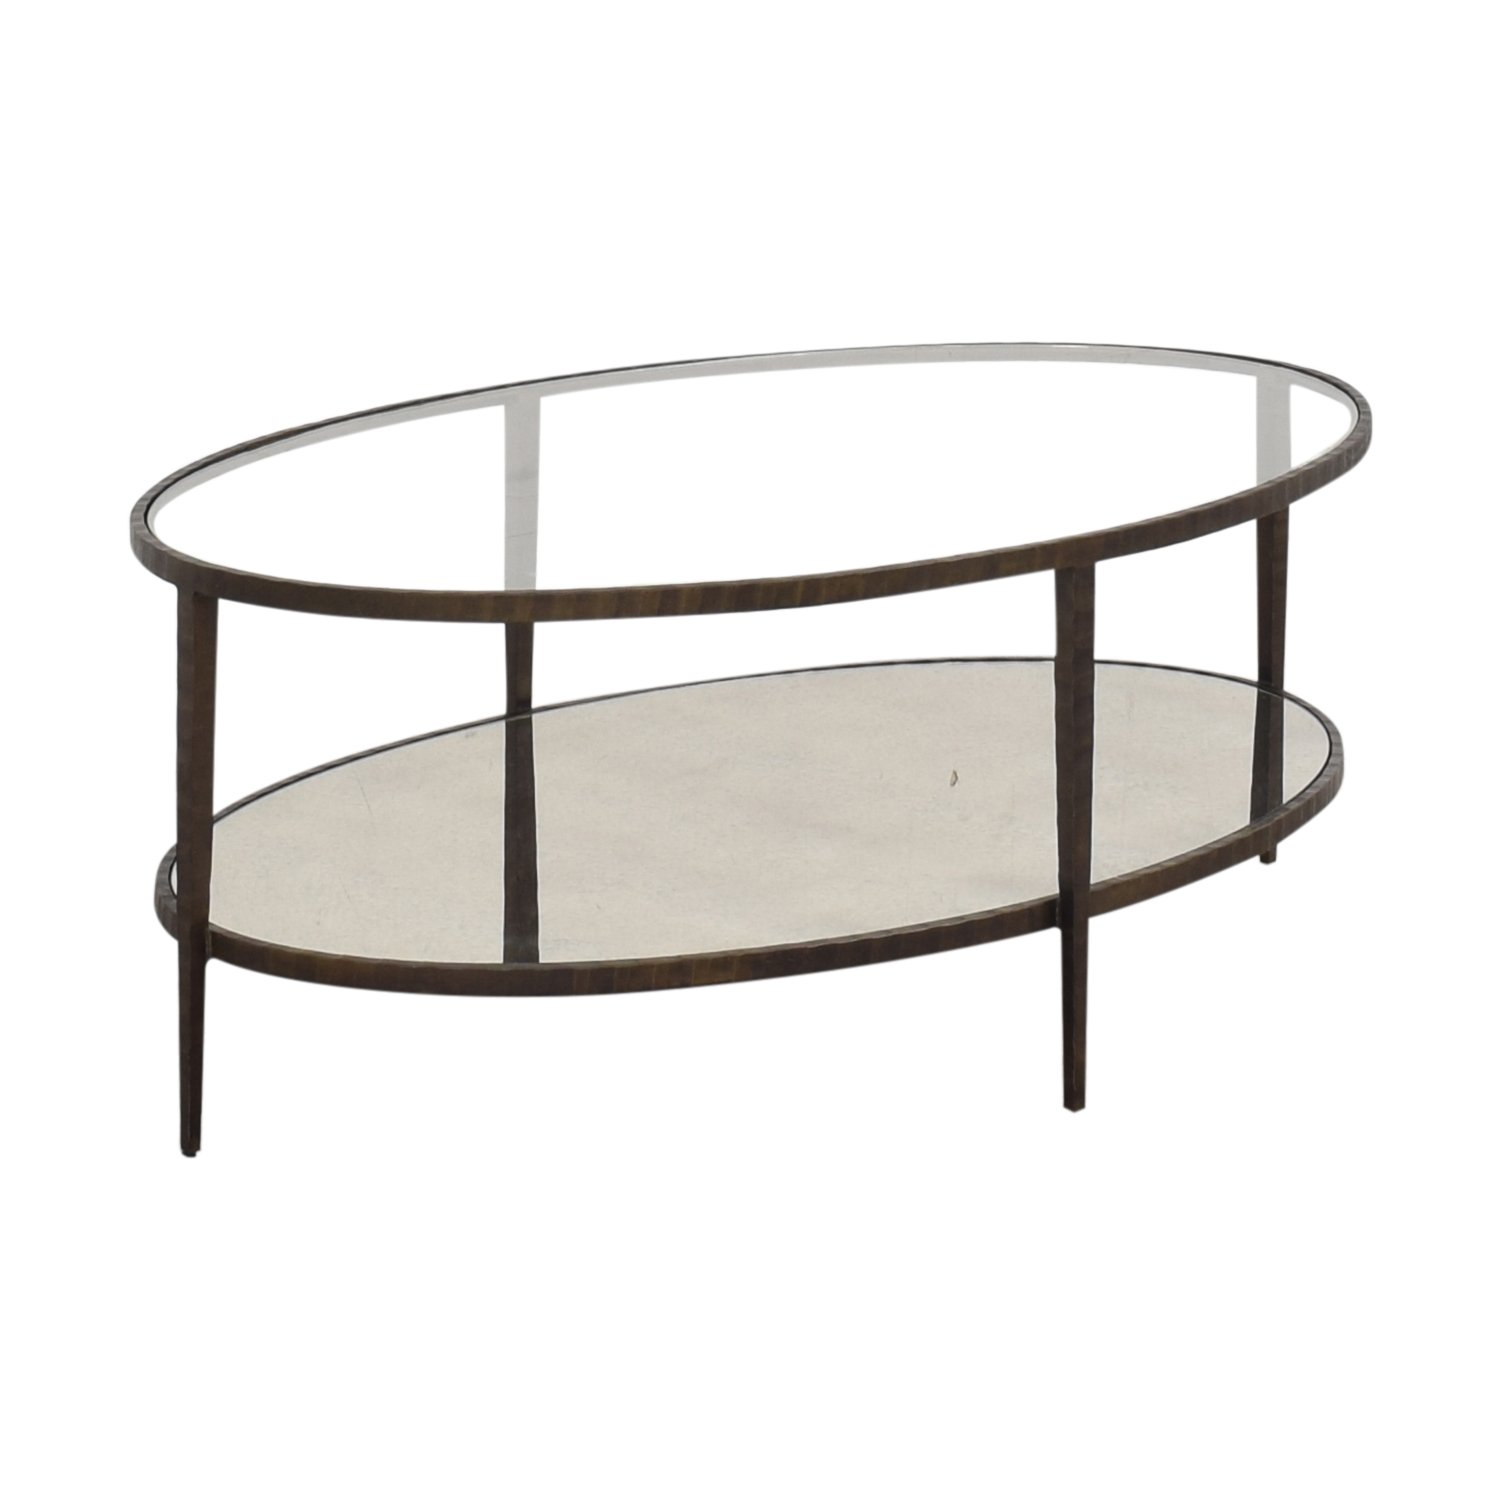 Clairemont Oval Coffee Table Crate & Barrel